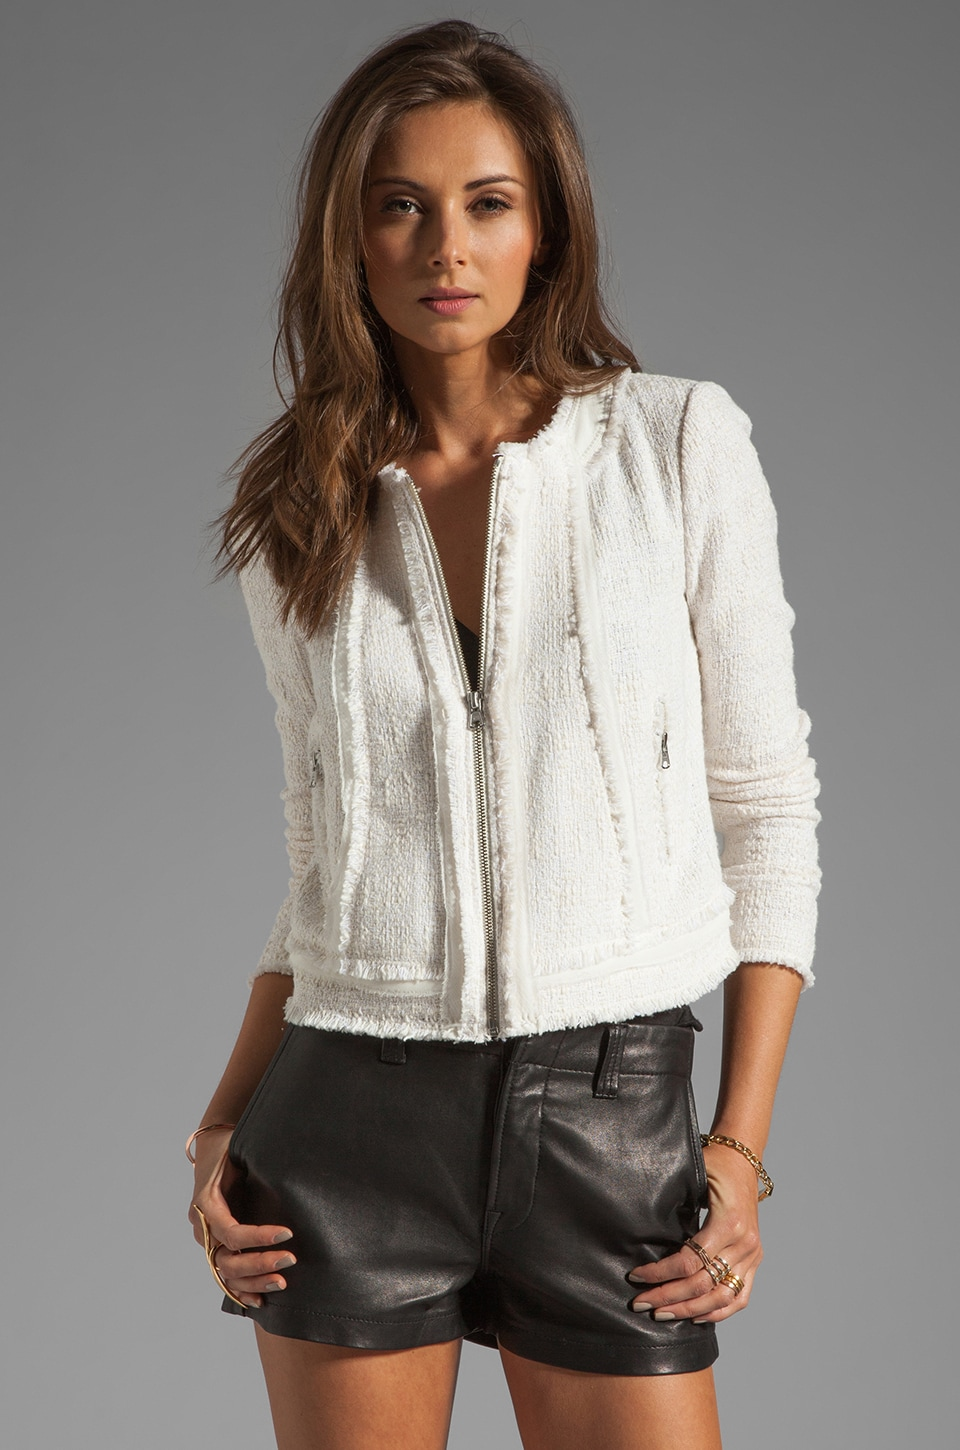 Rebecca Taylor Tweed Jacket In Cream Optic White Revolve